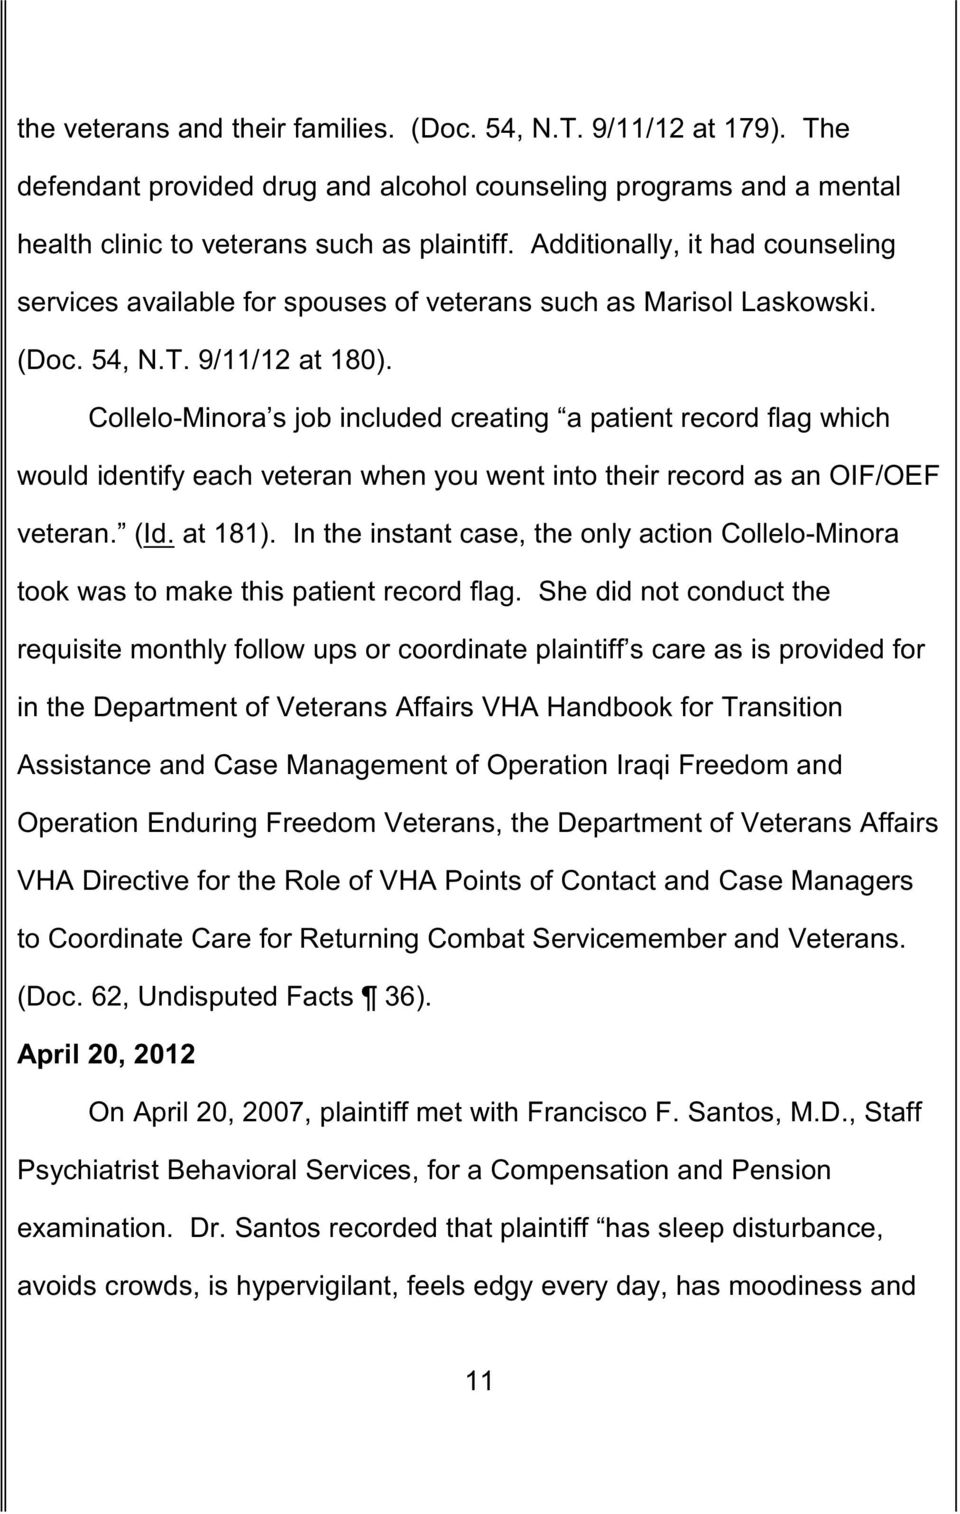 Collelo-Minora s job included creating a patient record flag which would identify each veteran when you went into their record as an OIF/OEF veteran. (Id. at 181).